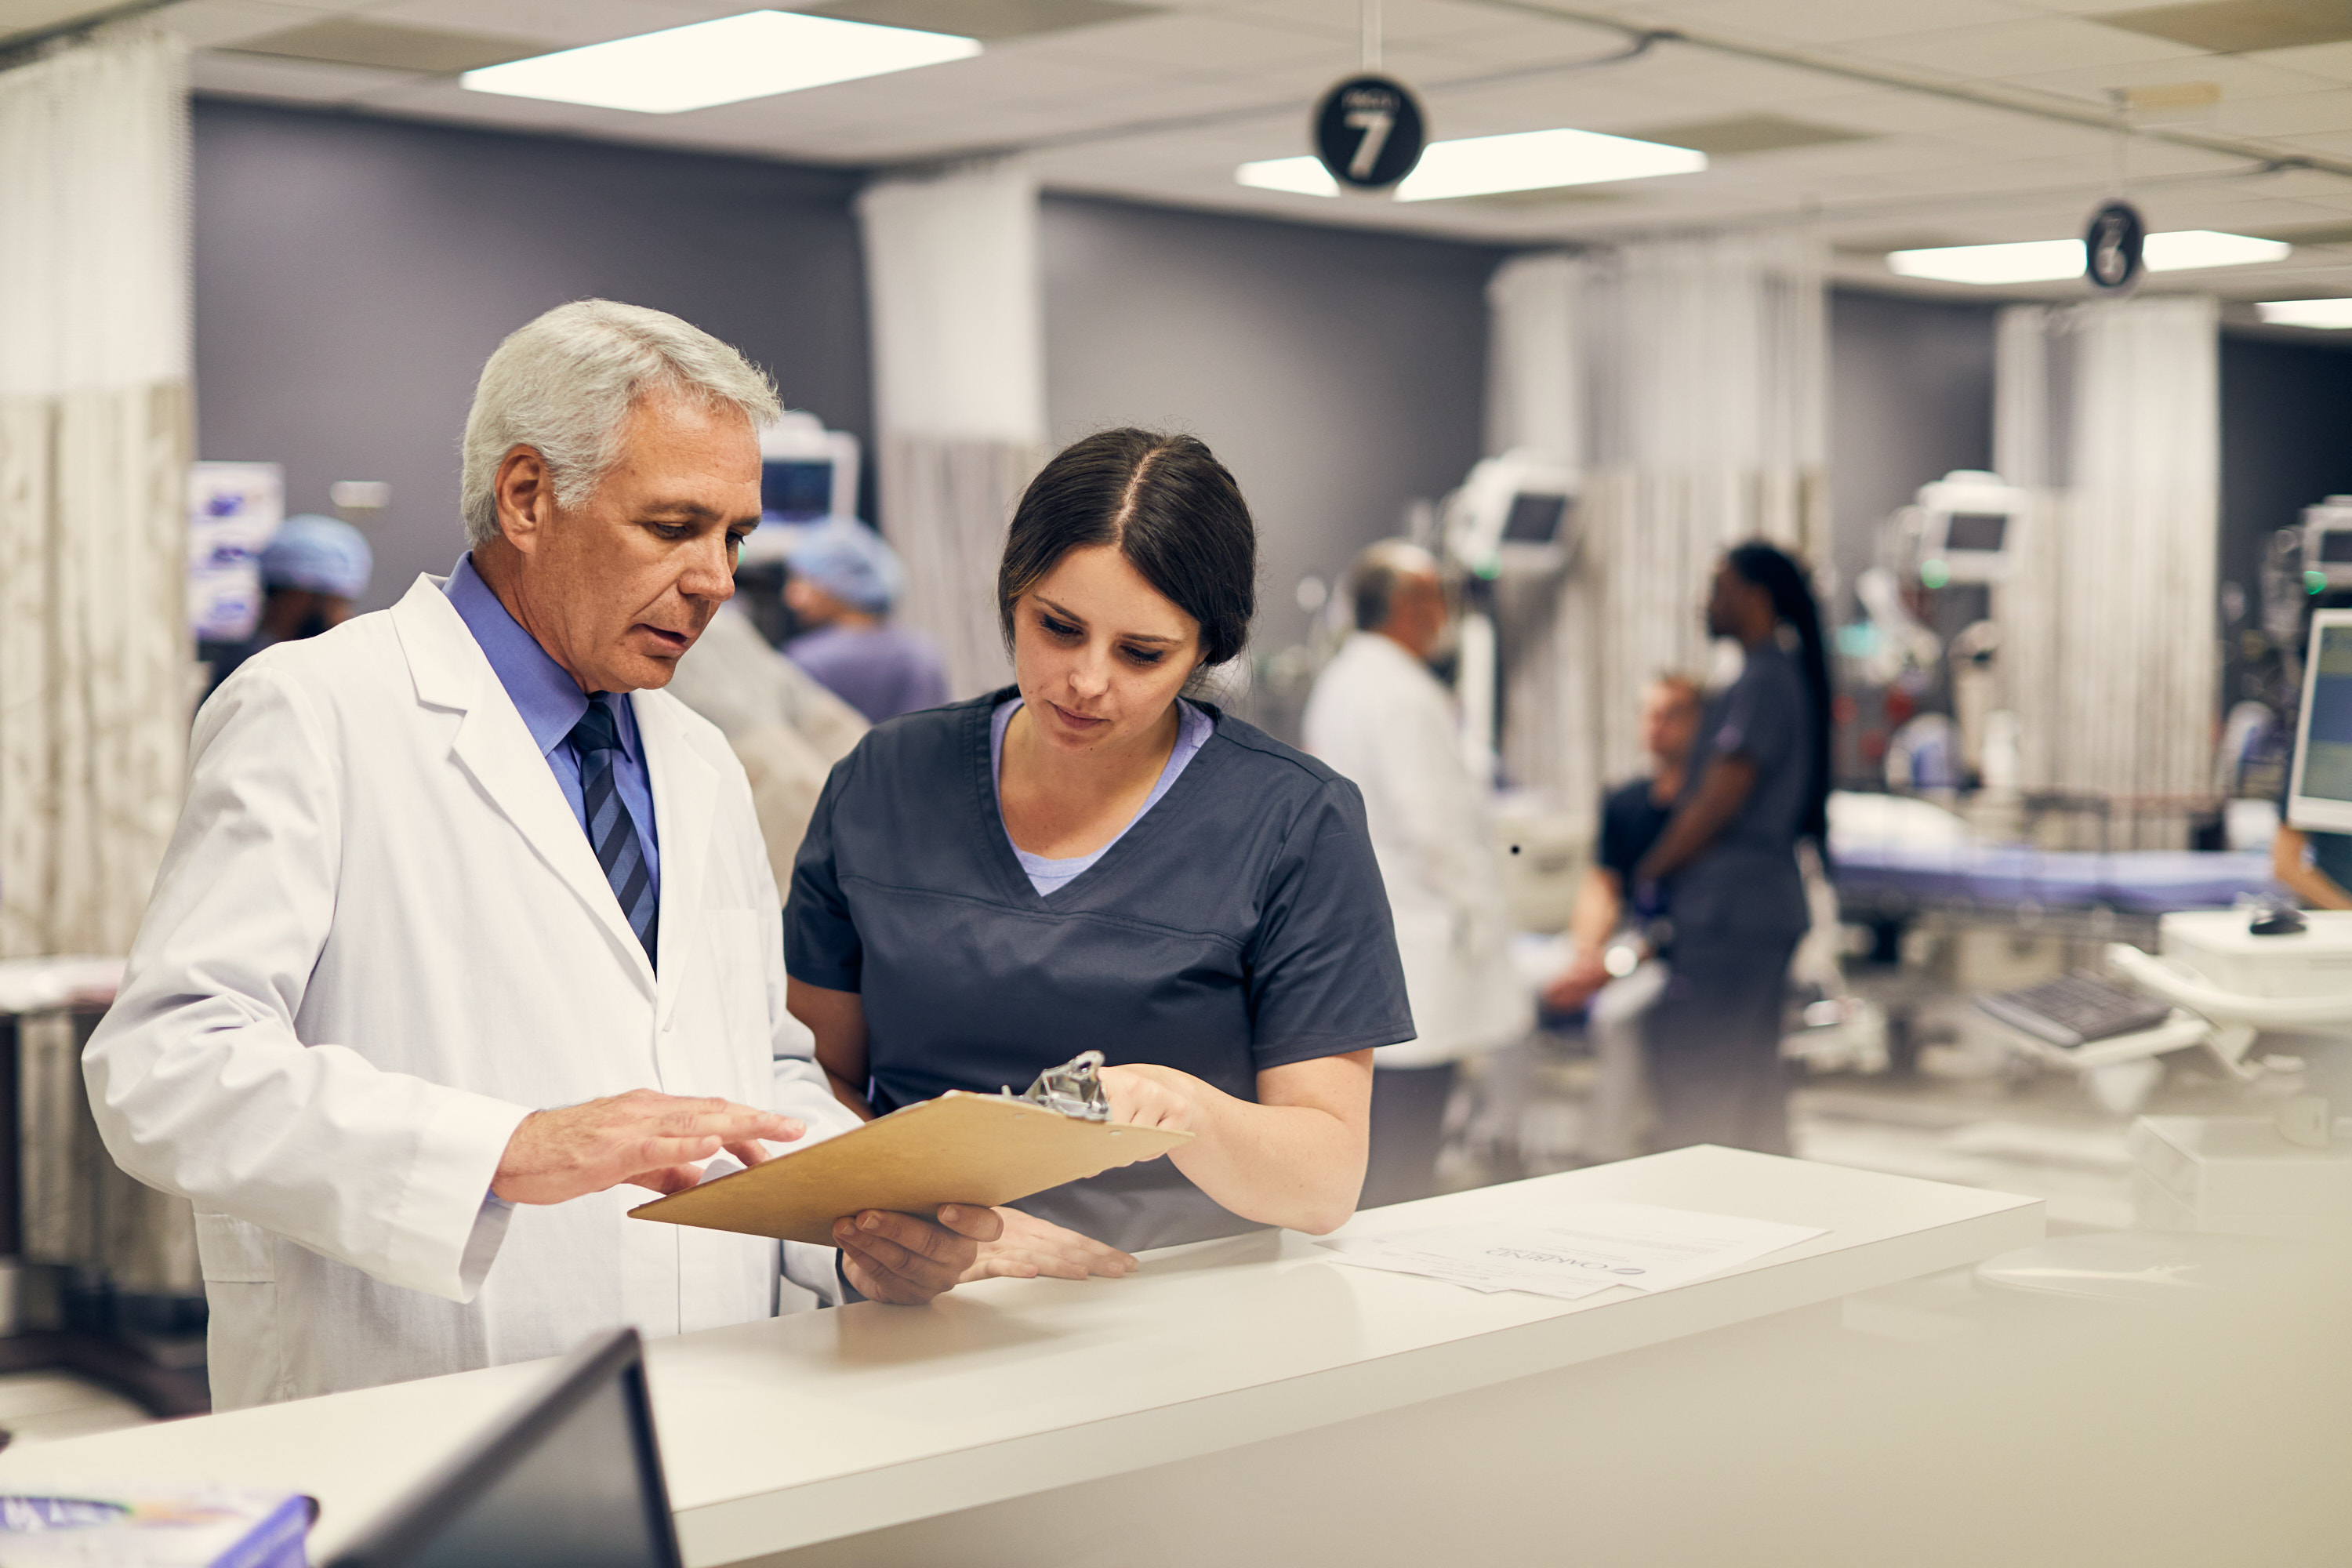 Doctor and Nurse | Healthcare Photography